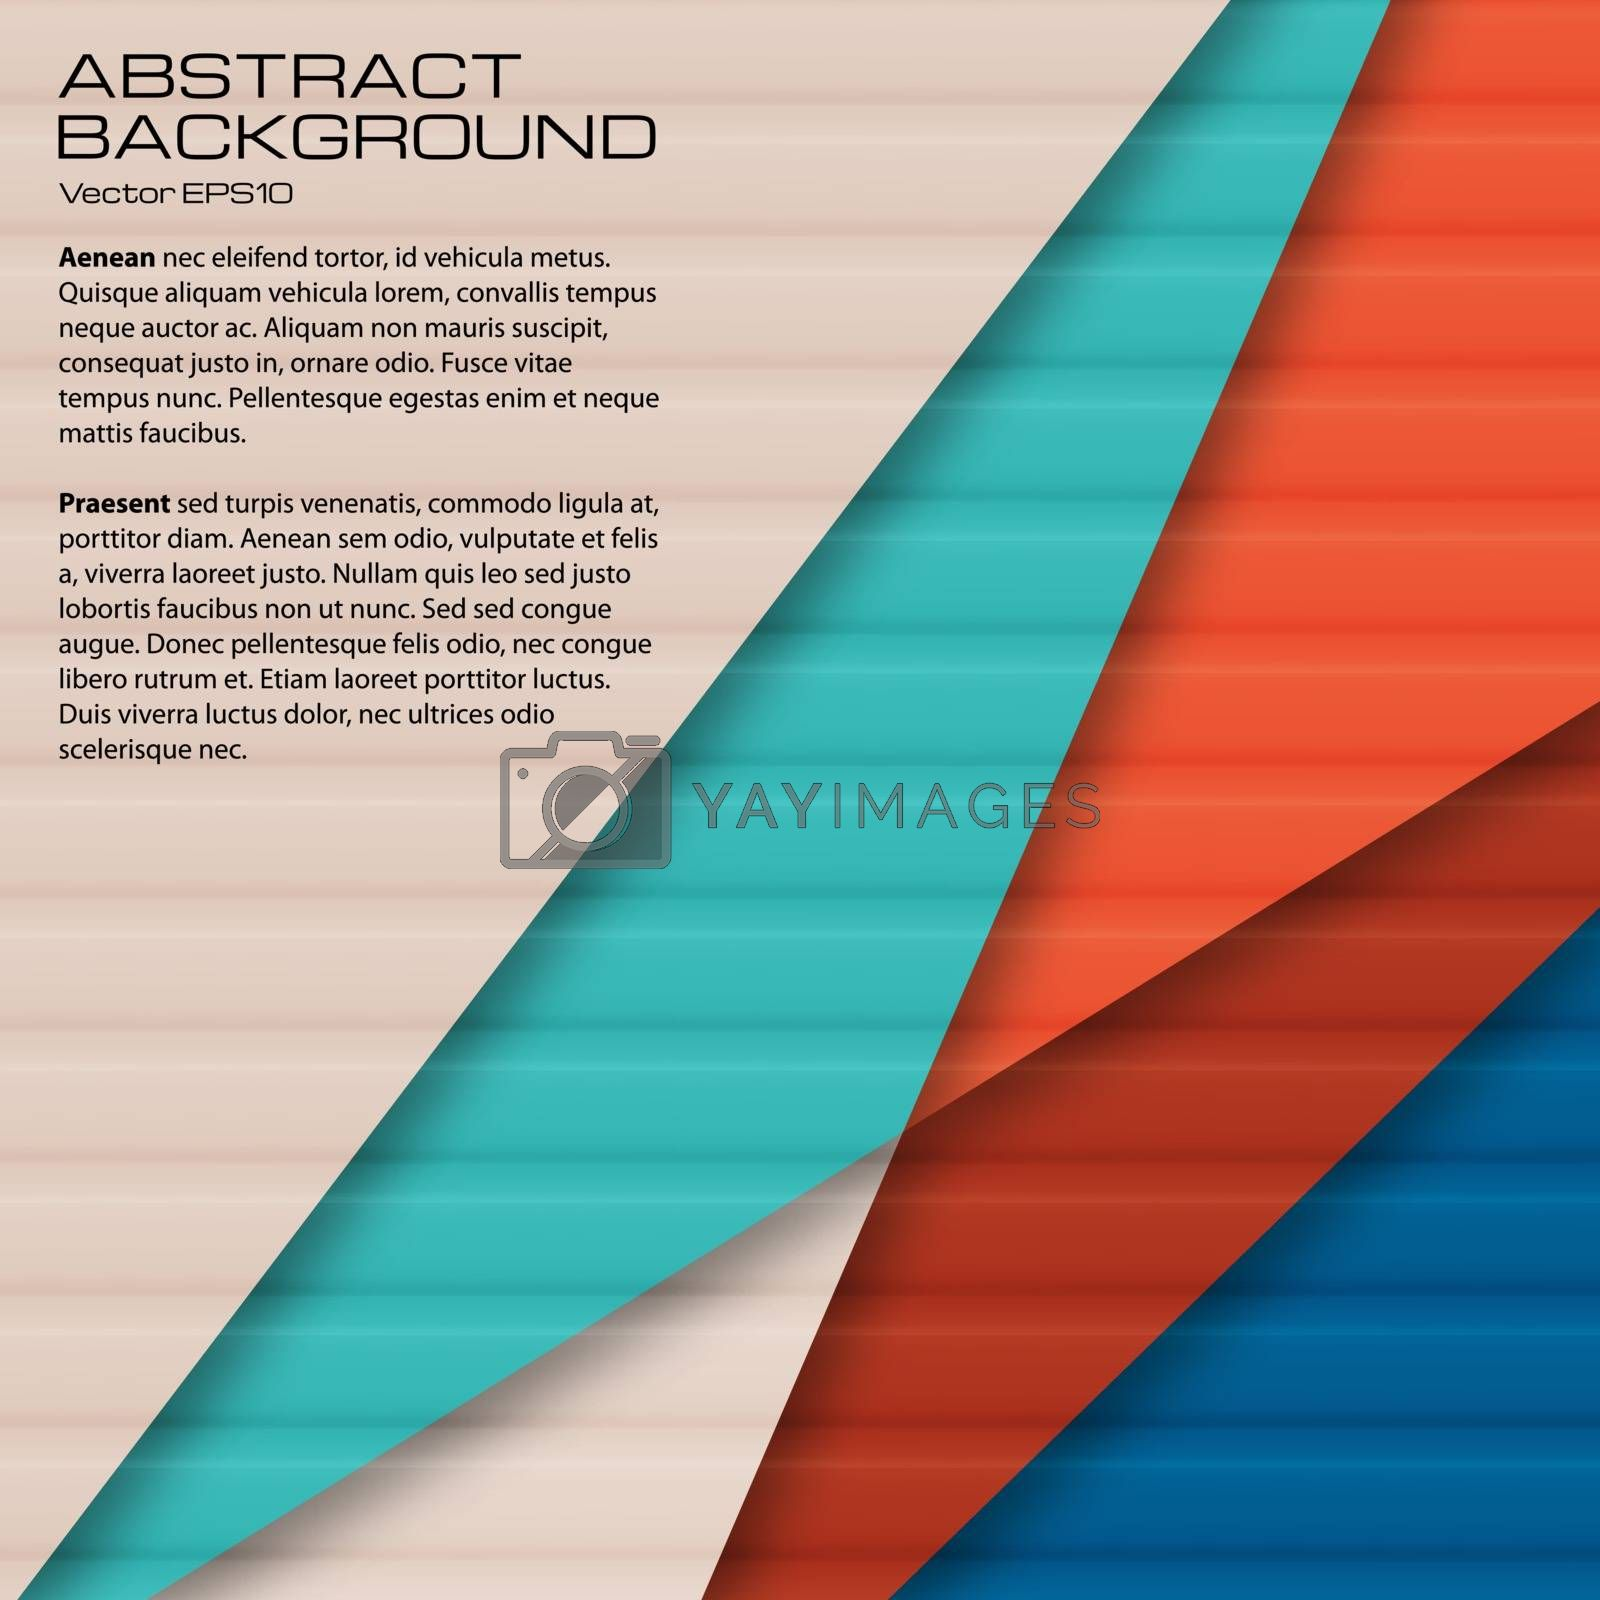 Abstract background by kartyl